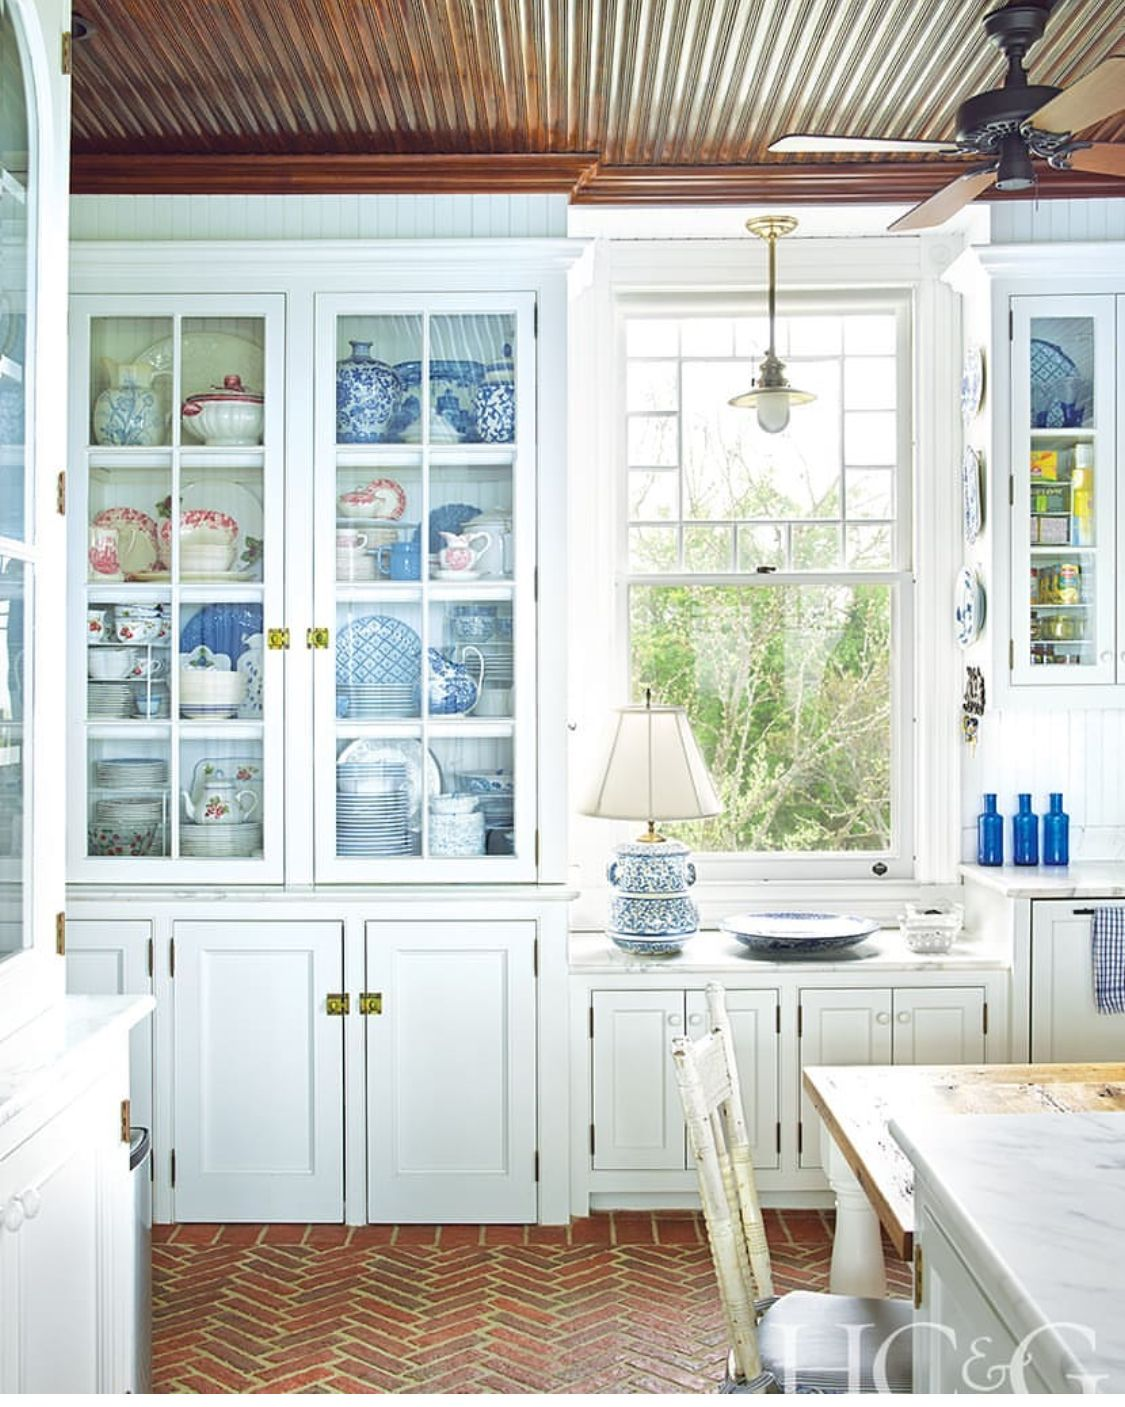 Pin by Harding & Company Design on H&Co Home Kitchens